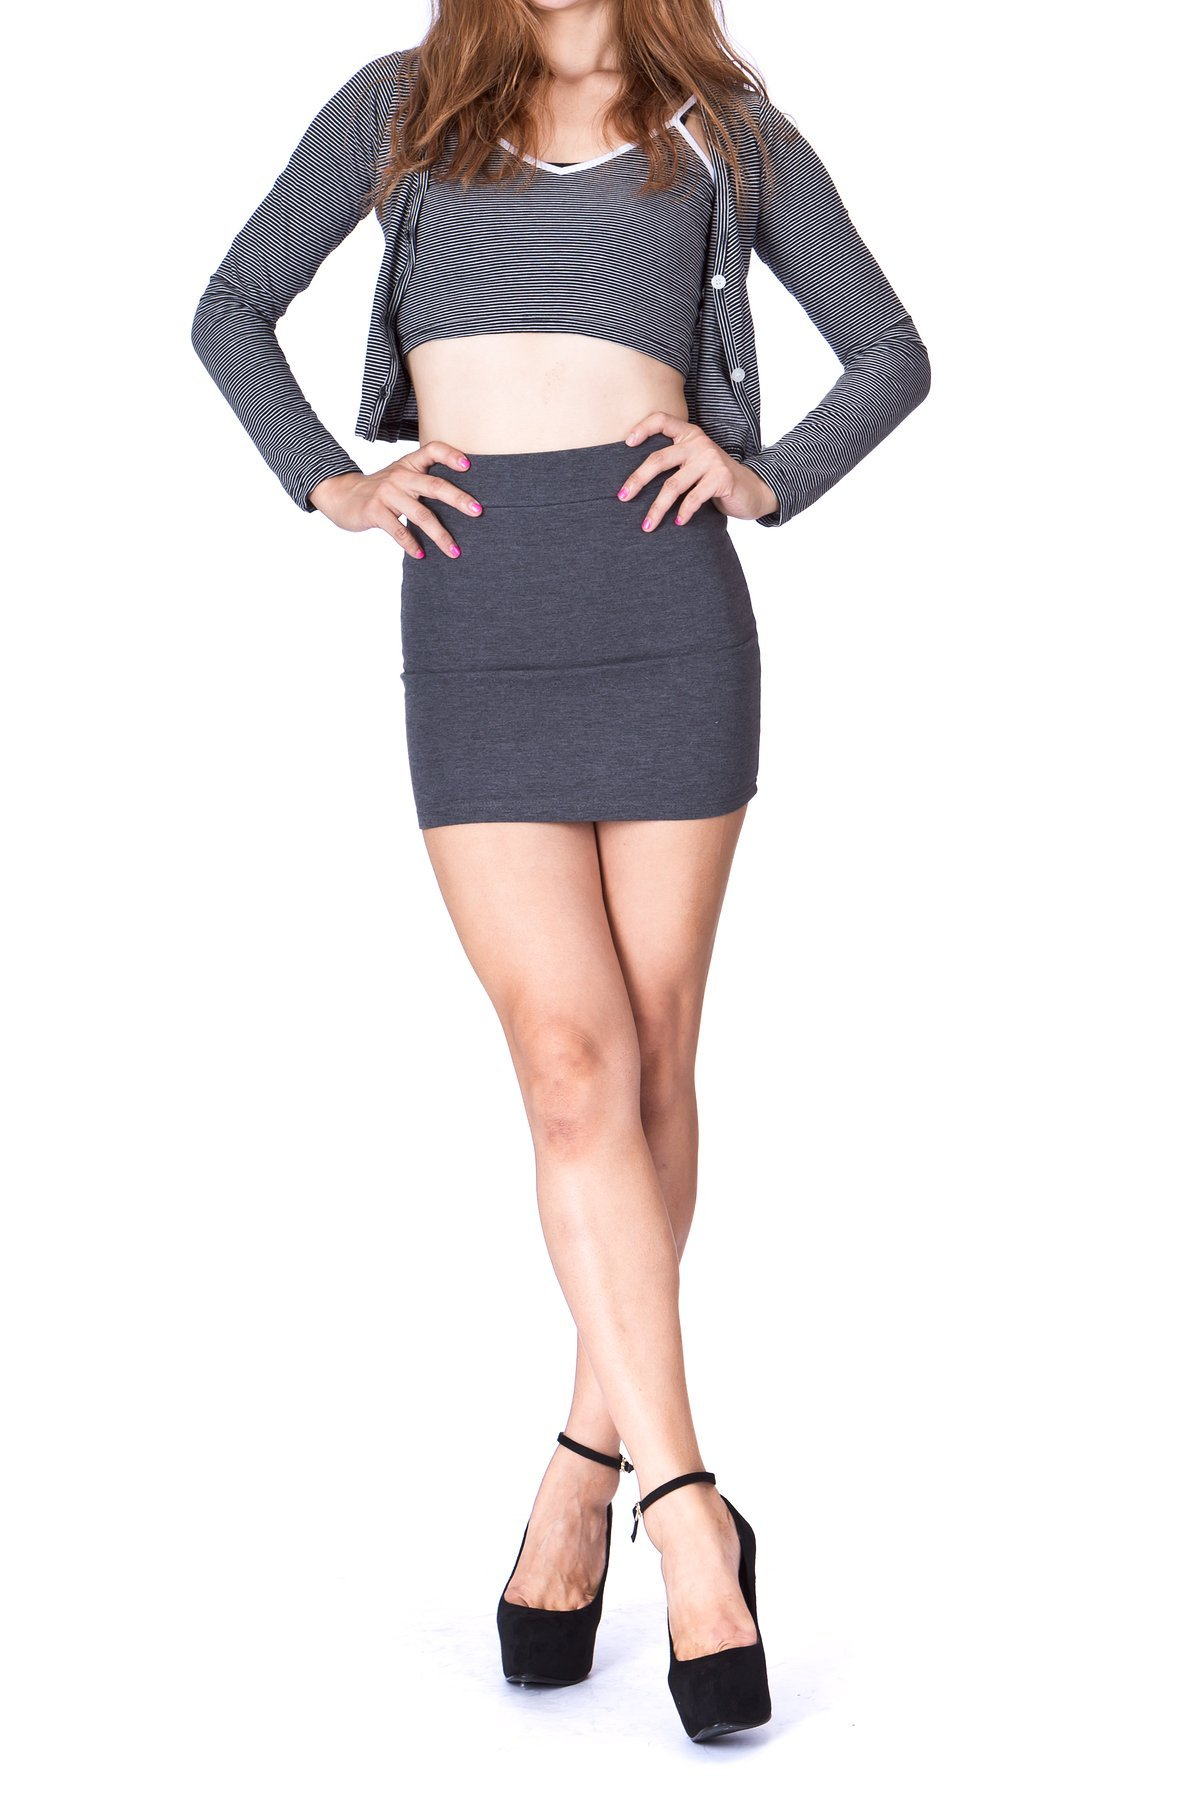 Must buy Basic Bodycon Pencil Short Mini Skirt Charcoal 2